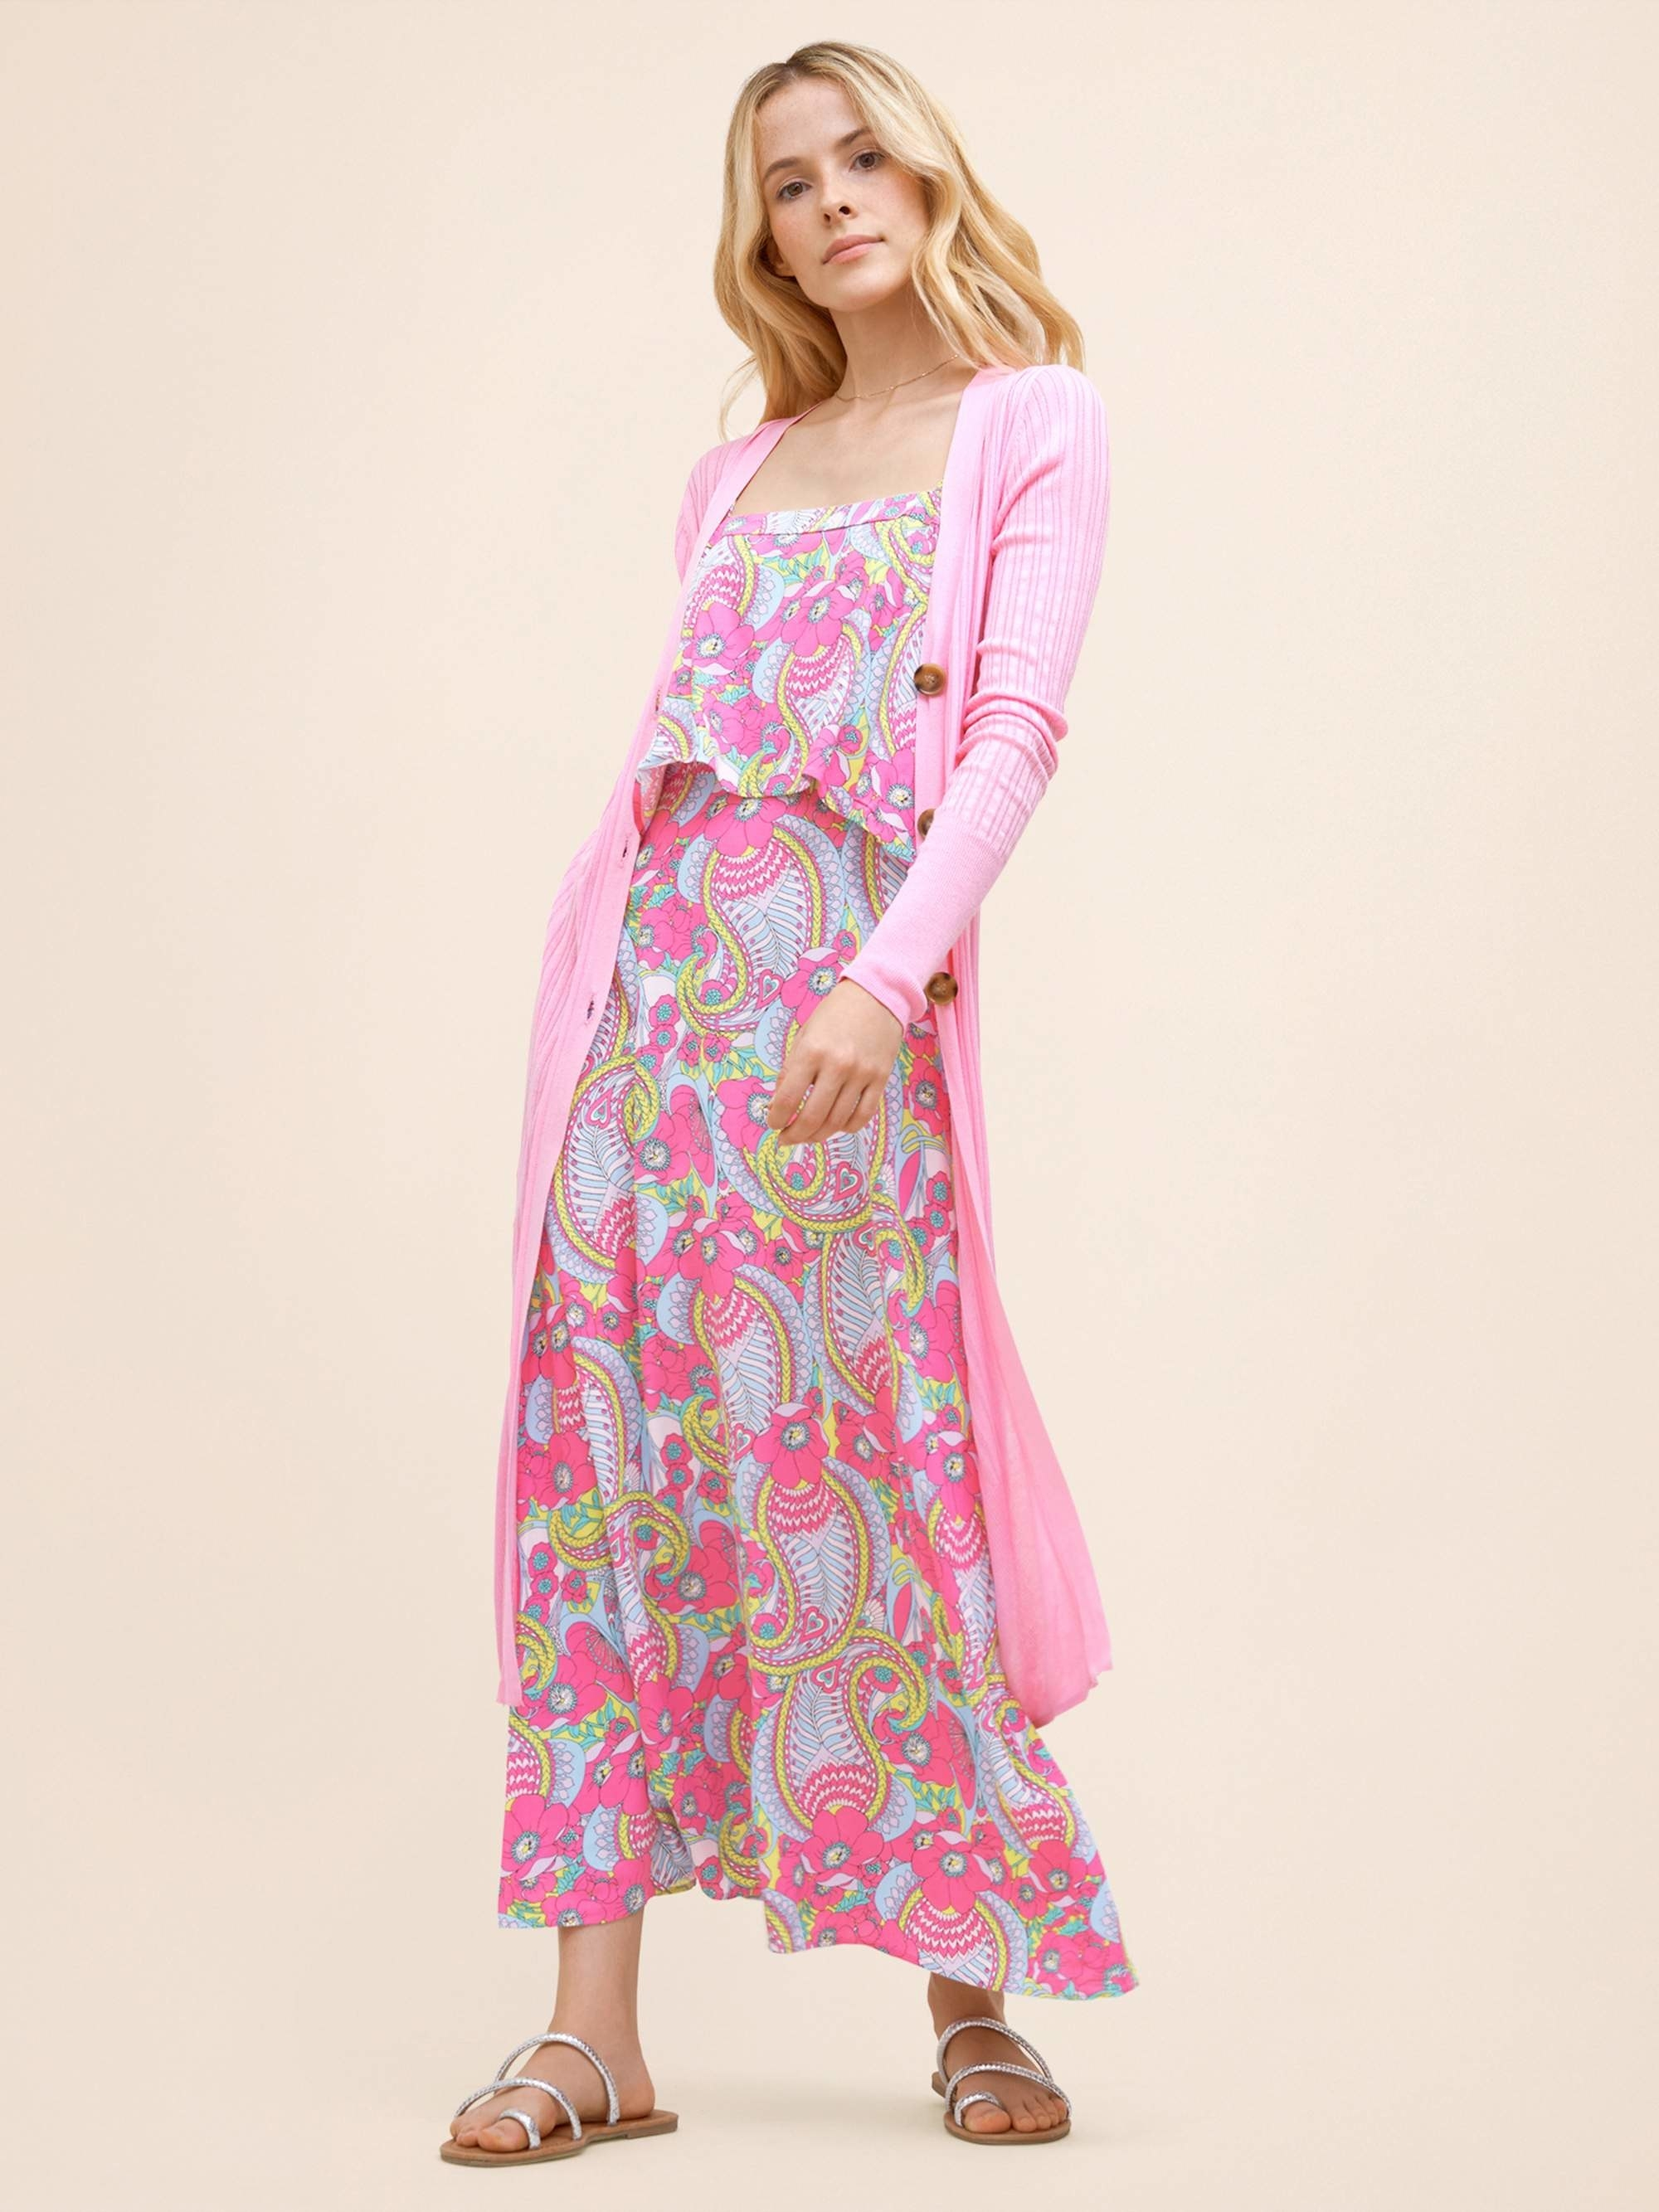 Model in pink paisley dress